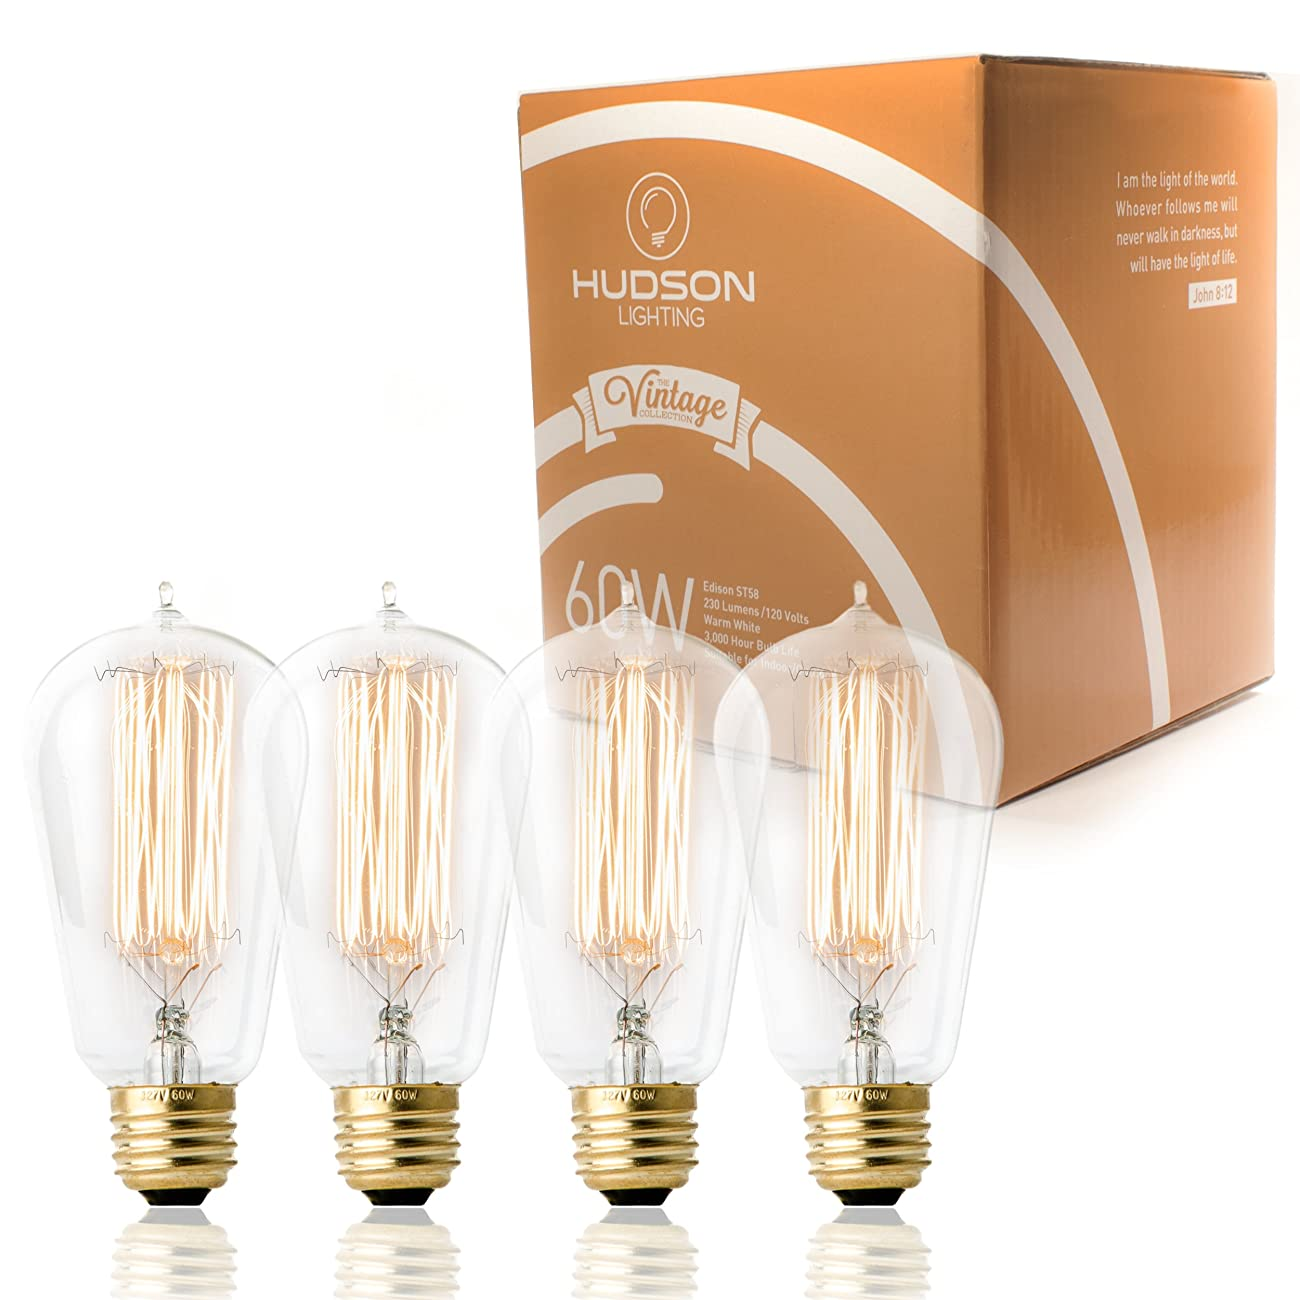 TOP RATED Hudson Lighting Vintage Antique Style Edison Bulb - 4 Pack - ST58 - Squirrel Cage Filament - 230 Lumens - 60 Watt - Dimmable - E26 Bulb Base - Classic Squirrel Cage Filament - Tear Drop Top 0